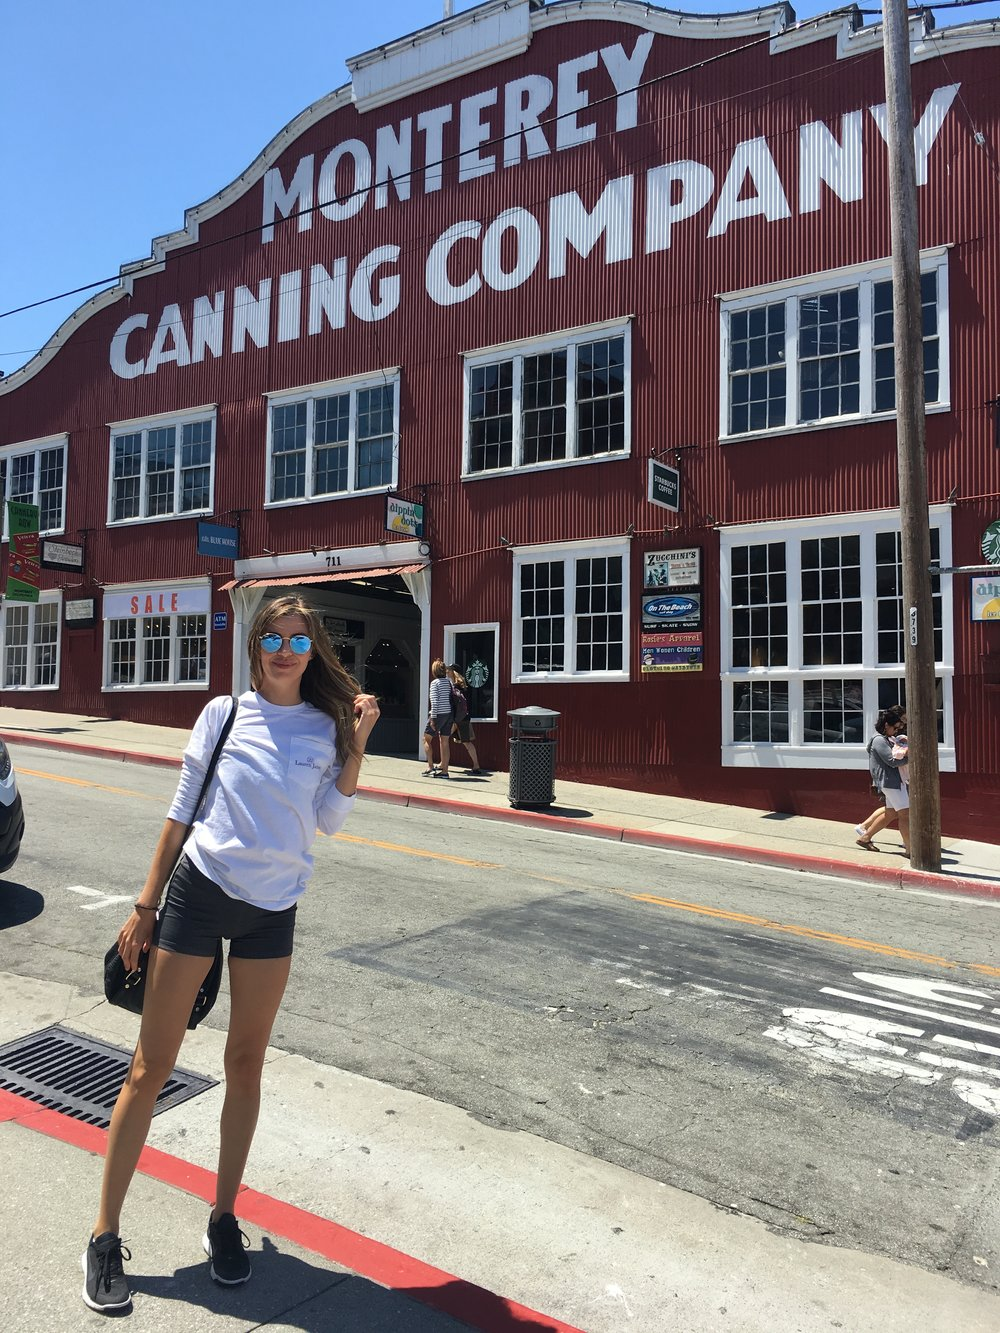 The Famous Monterey Cannery Row! So much dining and wine tasting along this beloved stretch.